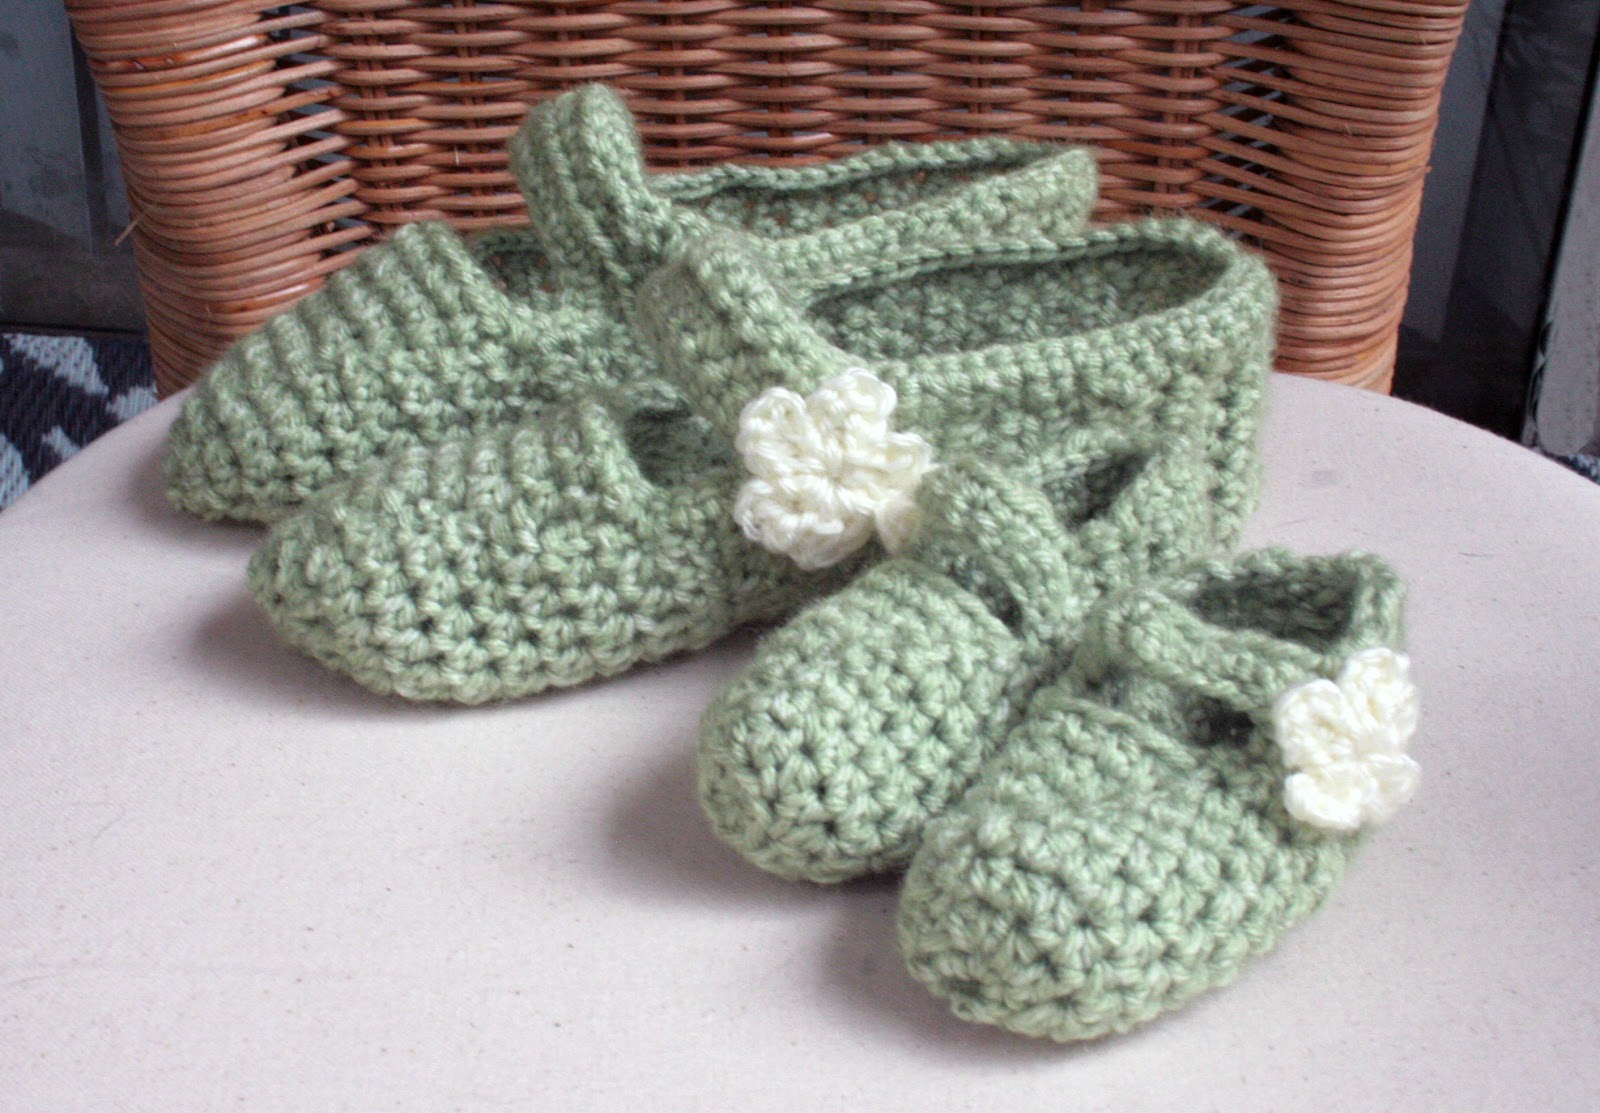 Free Crochet Patterns Mary Jane Booties : FREE CROCHET PATTERNS FOR NEWBORN MARY JANES - Crochet and ...